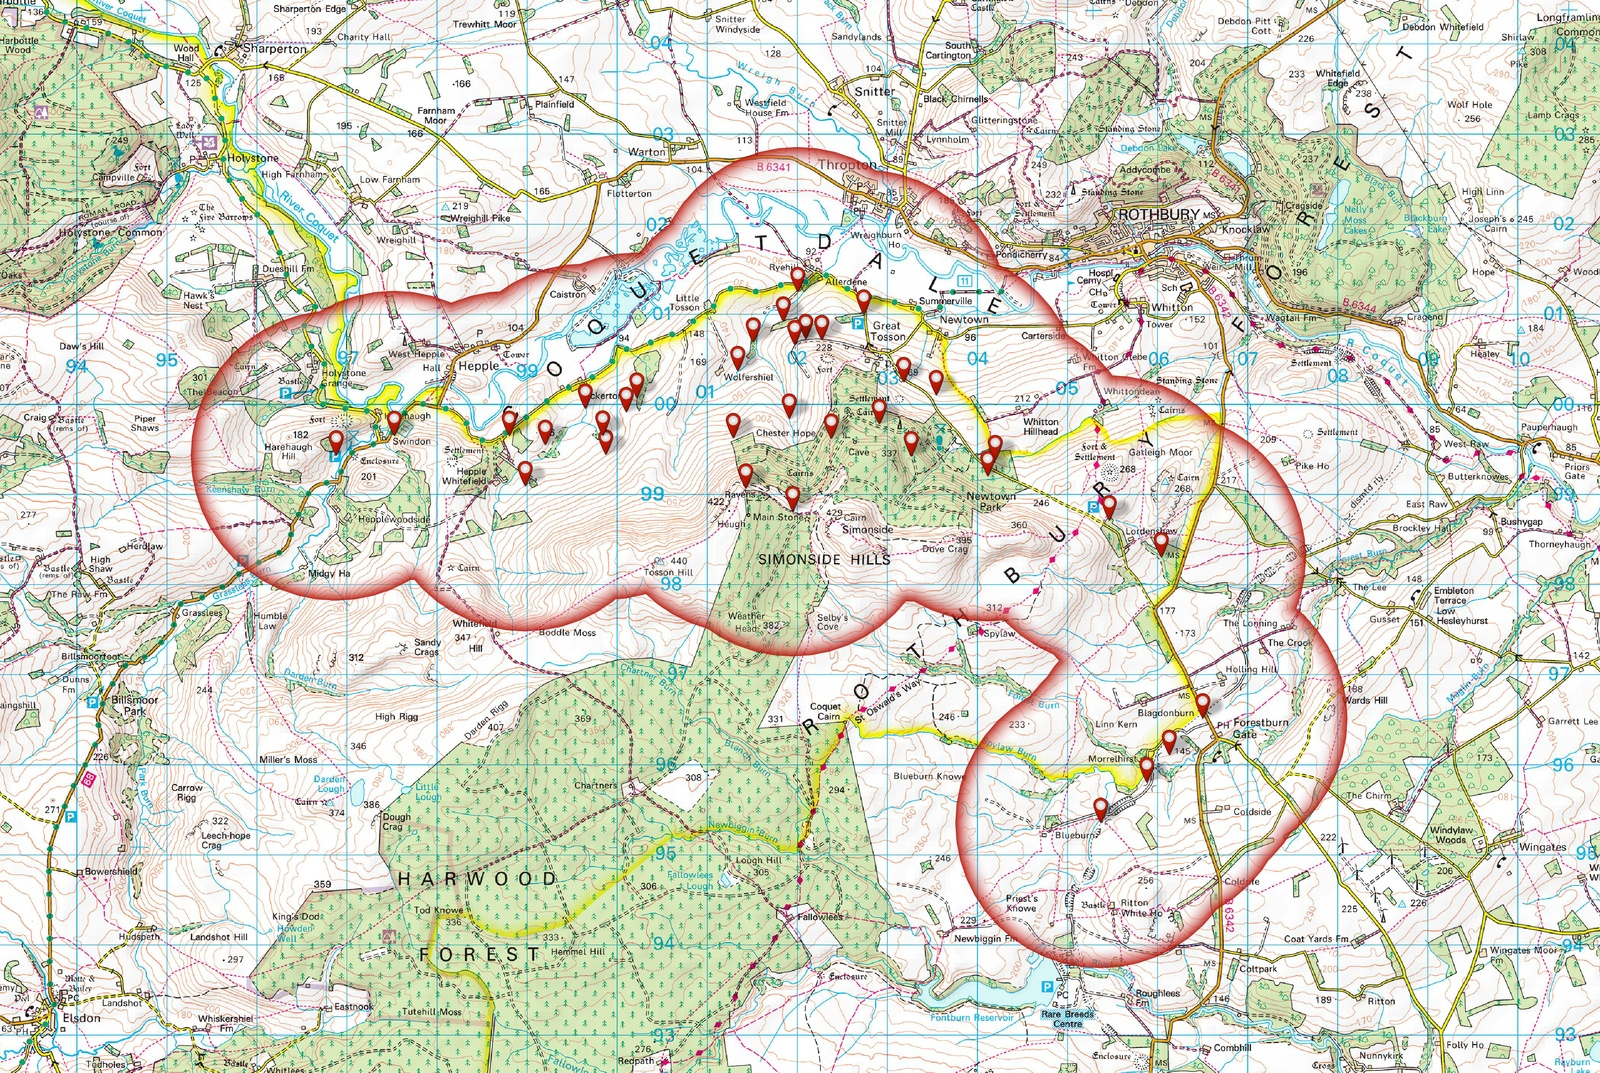 Map showing Willows in the Simonside Hills